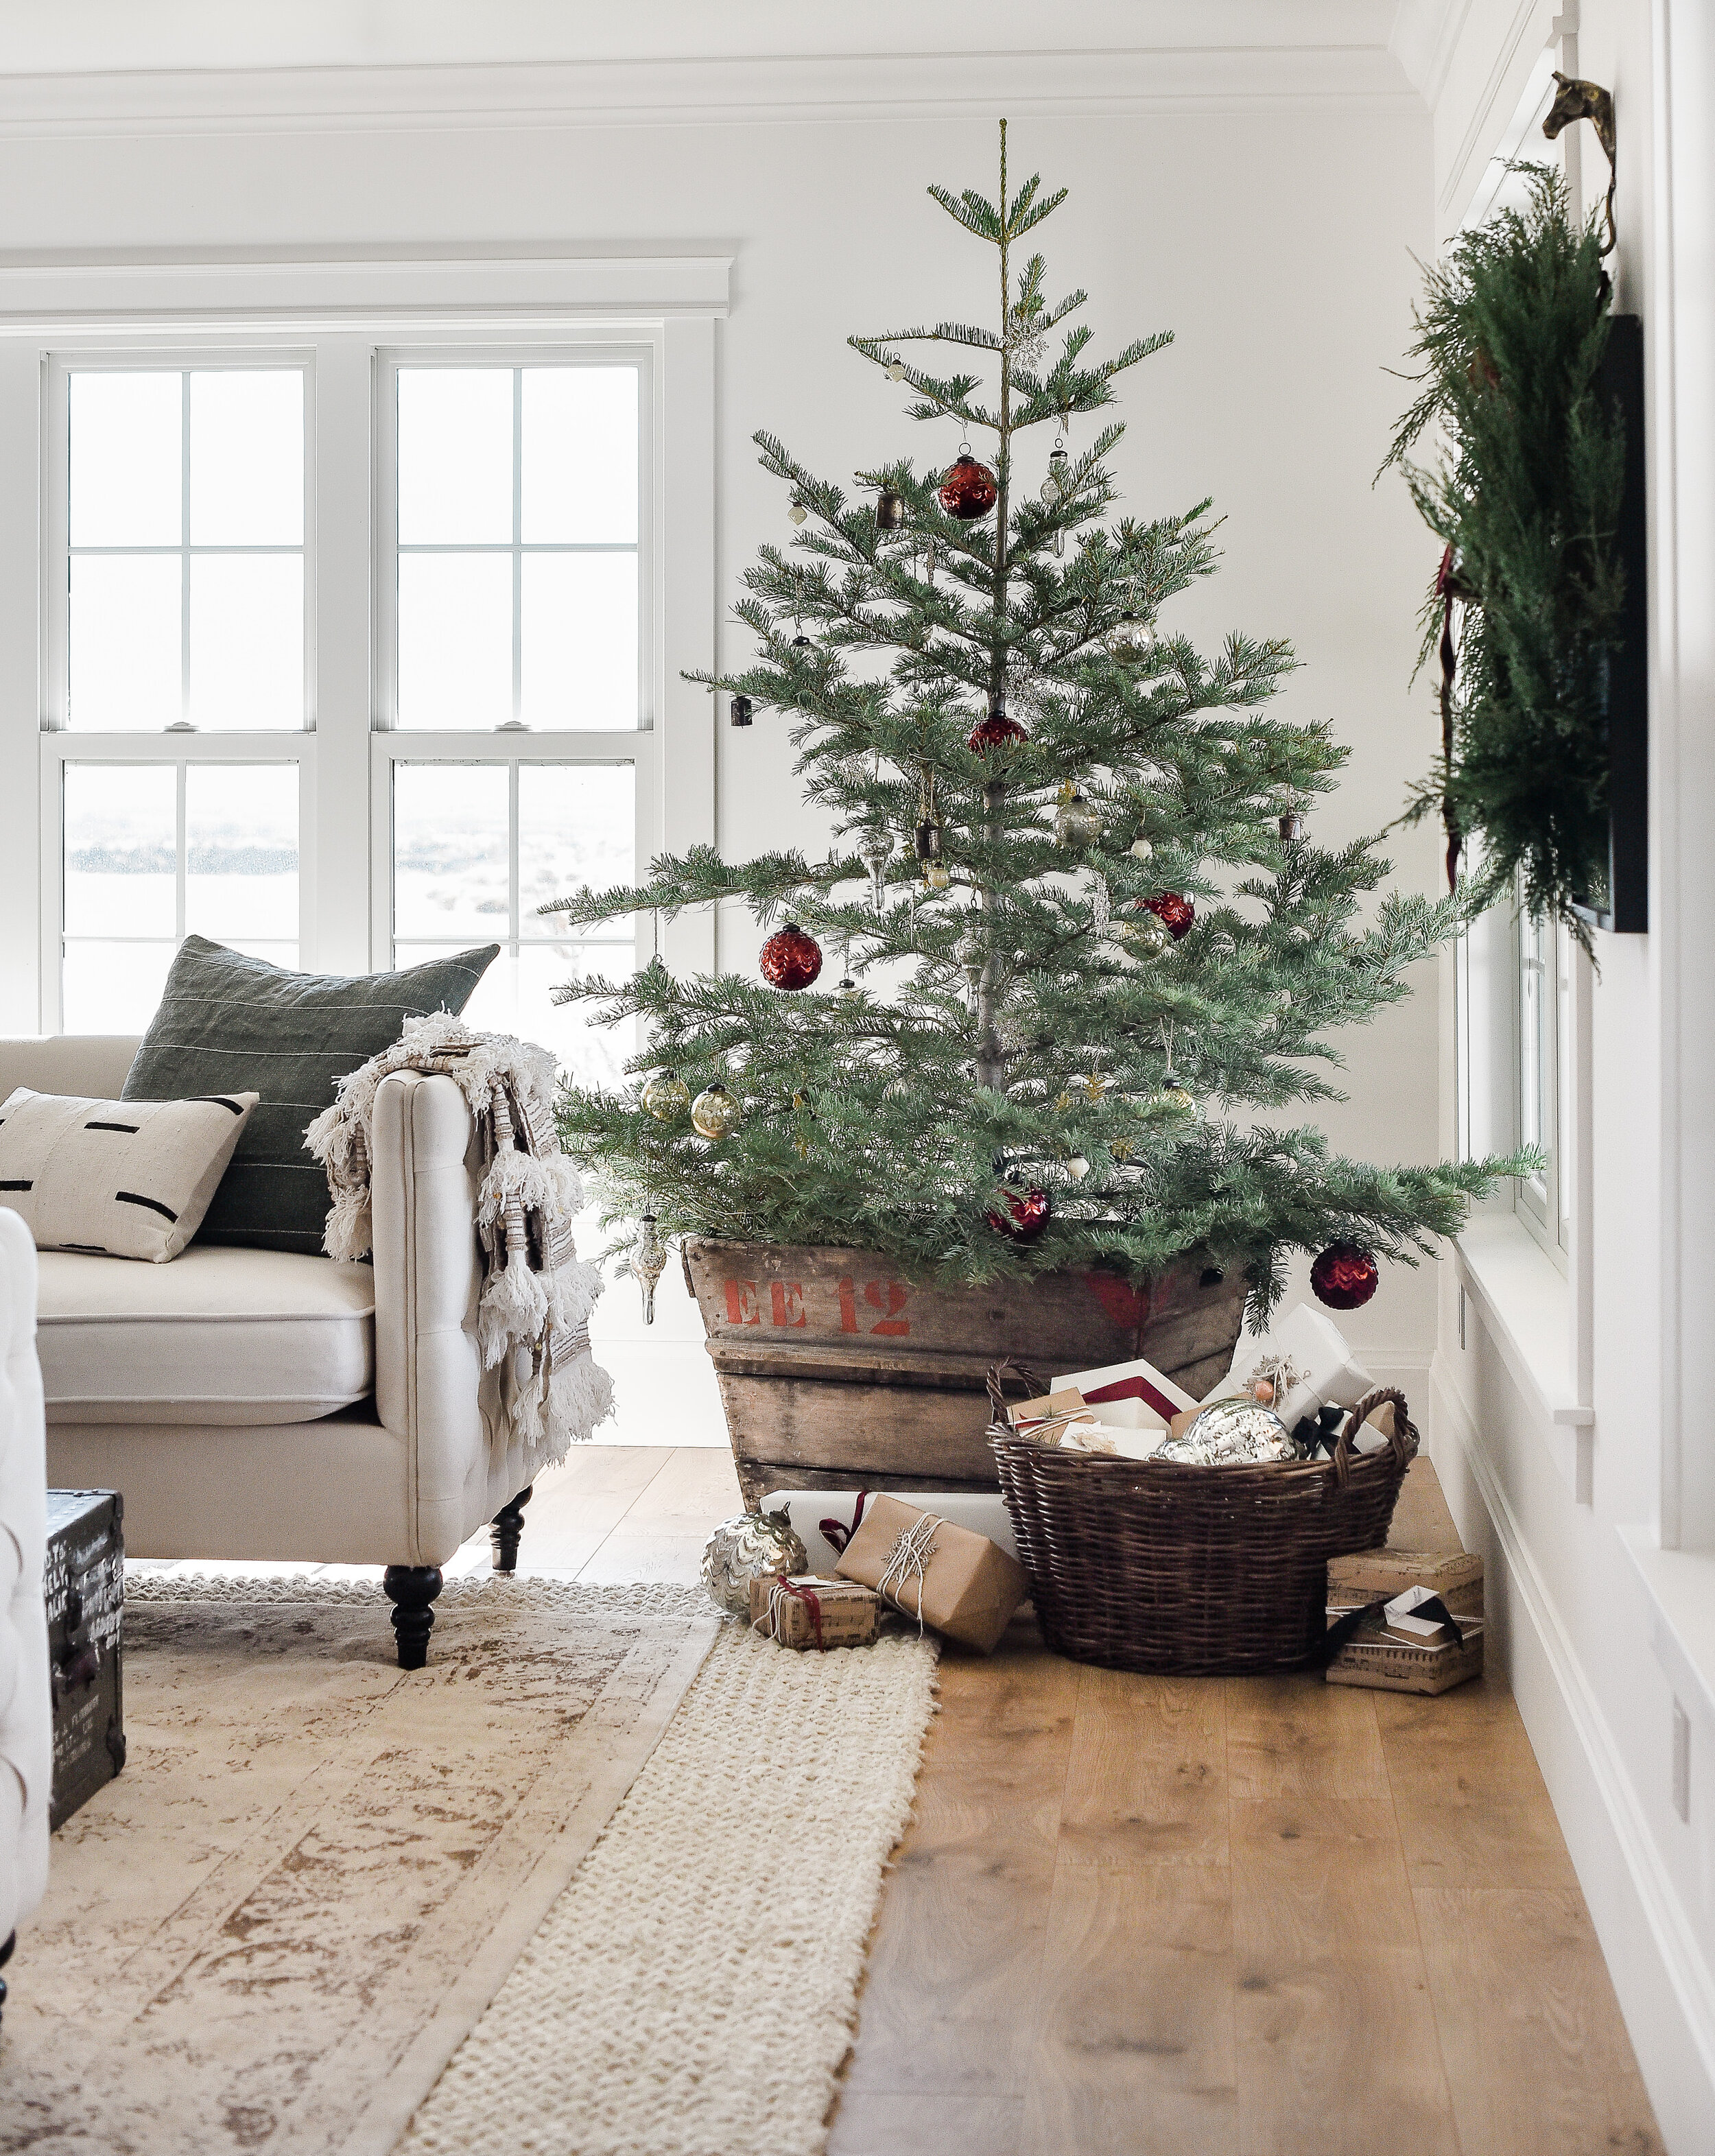 Farmhouse Christmas Decor: Living Room & Tree Ideas ...